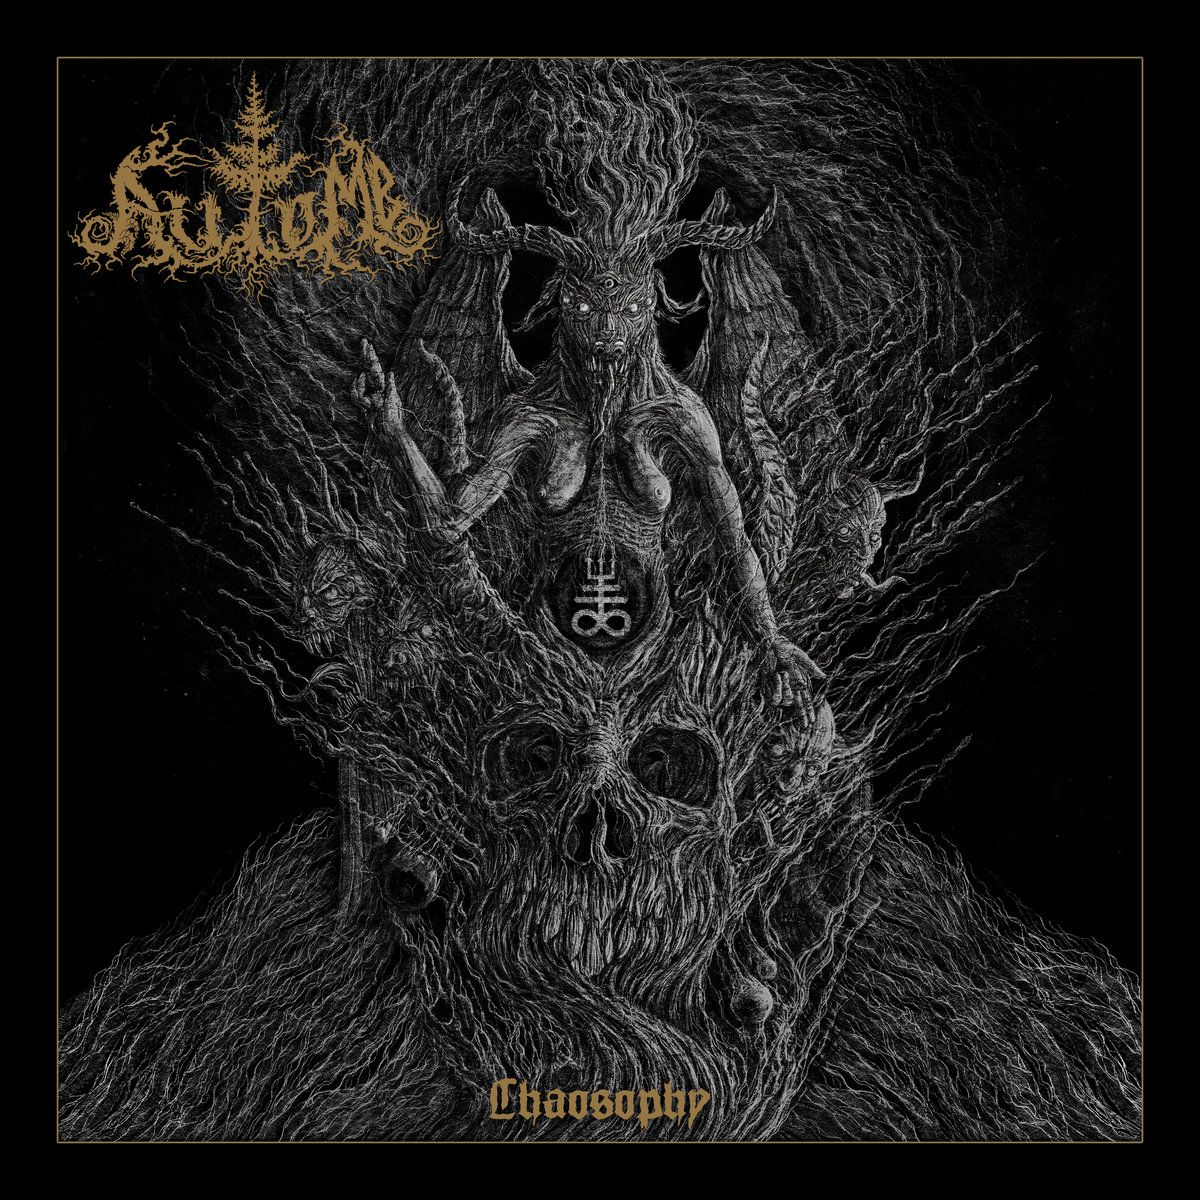 Review for Automb - Chaosophy